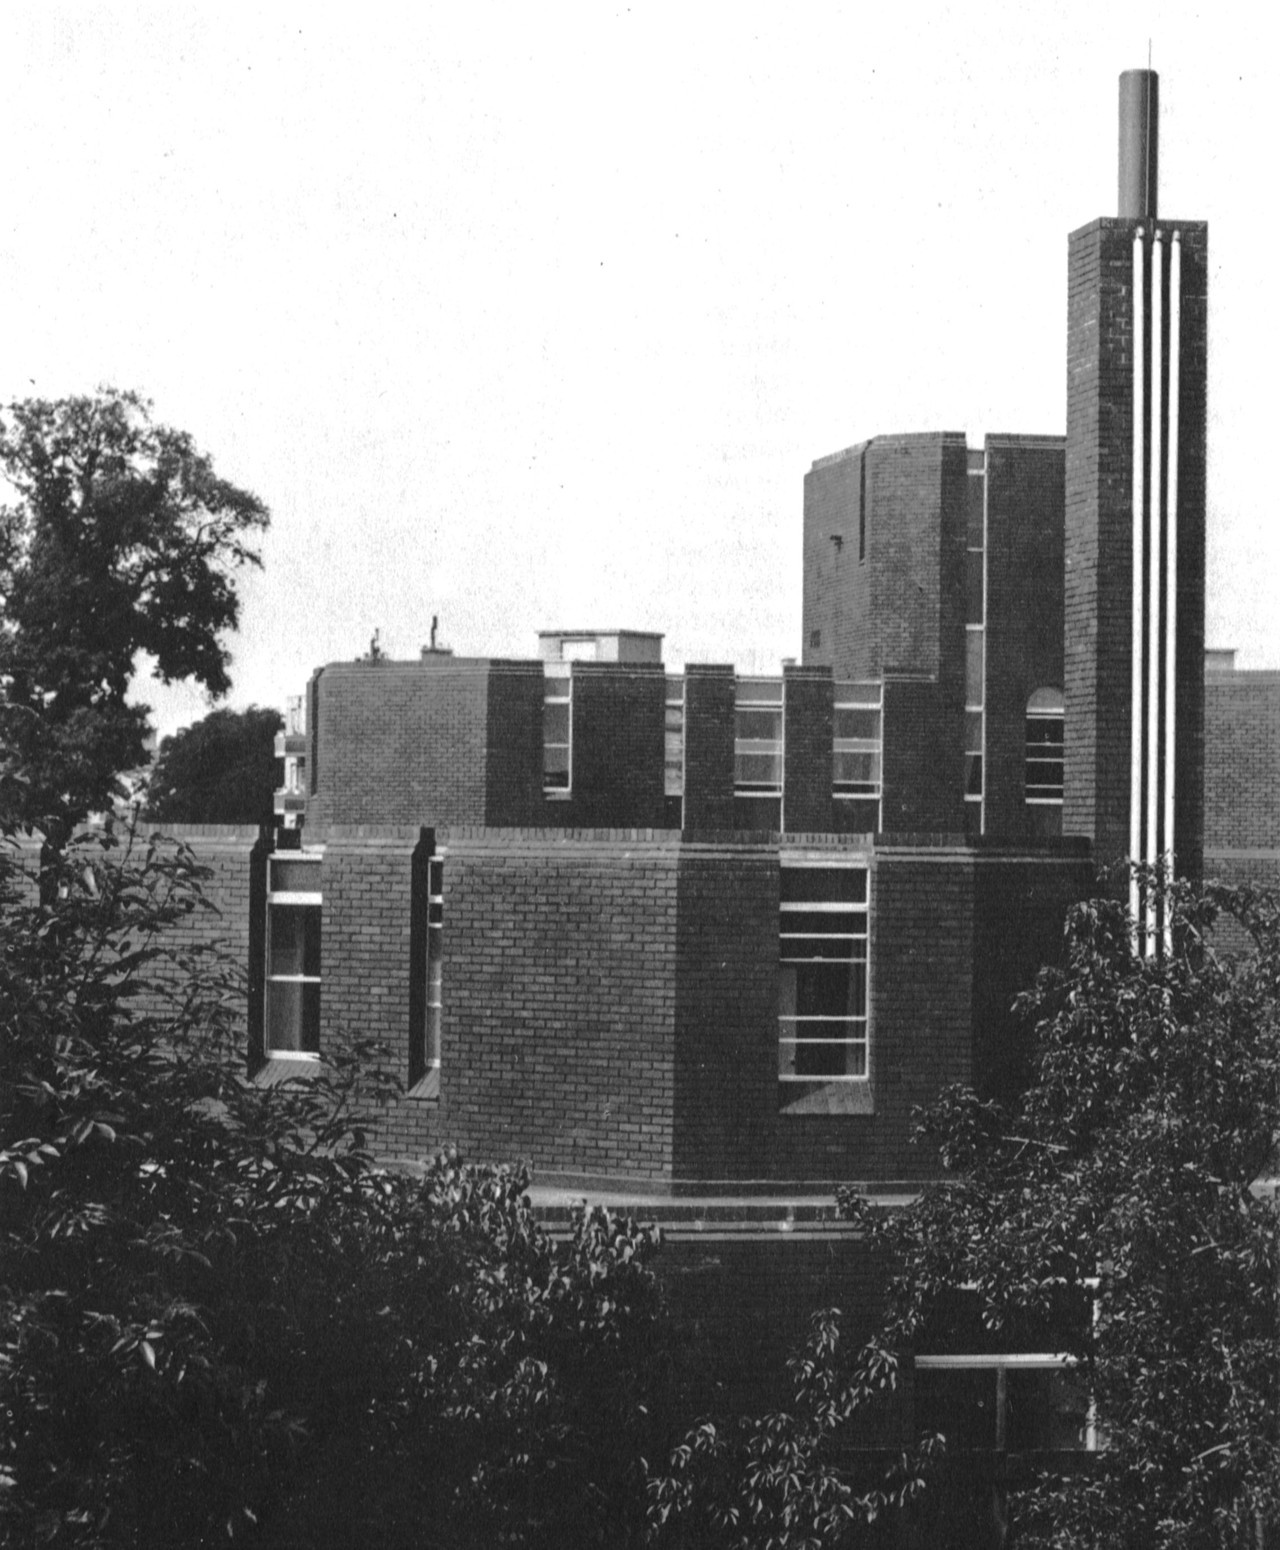 Perrygrove Old People's Home, Blackheath, London, 1960-64 (Stirling and Gowan)